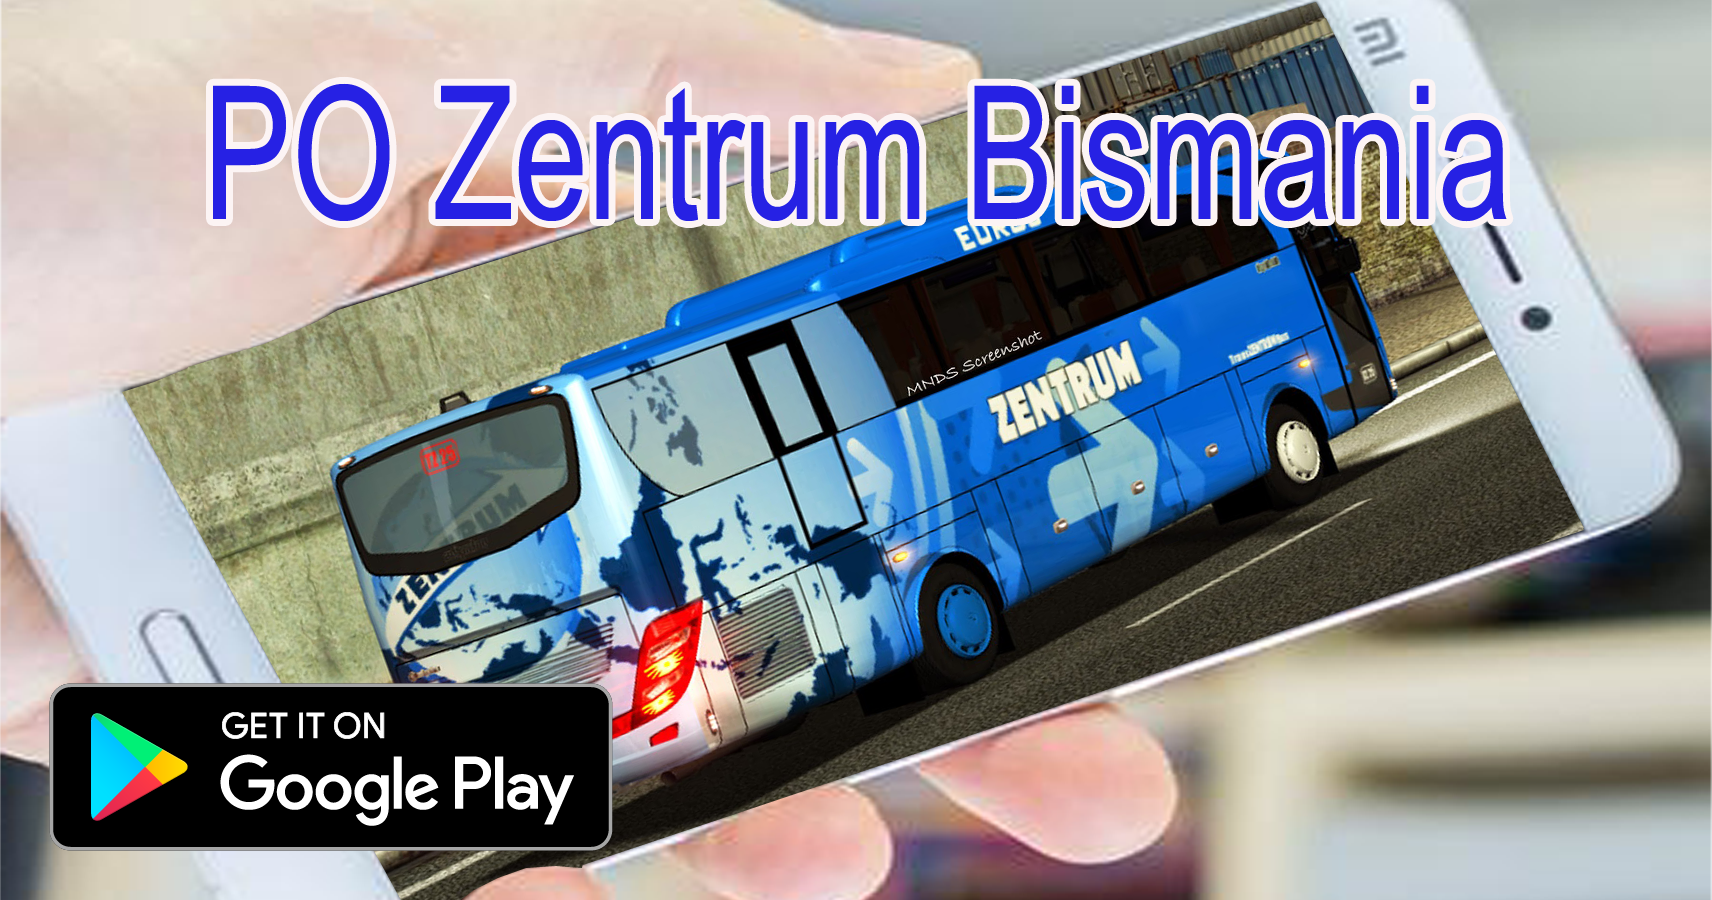 PO Zentrum Bismania Apl Android Di Google Play